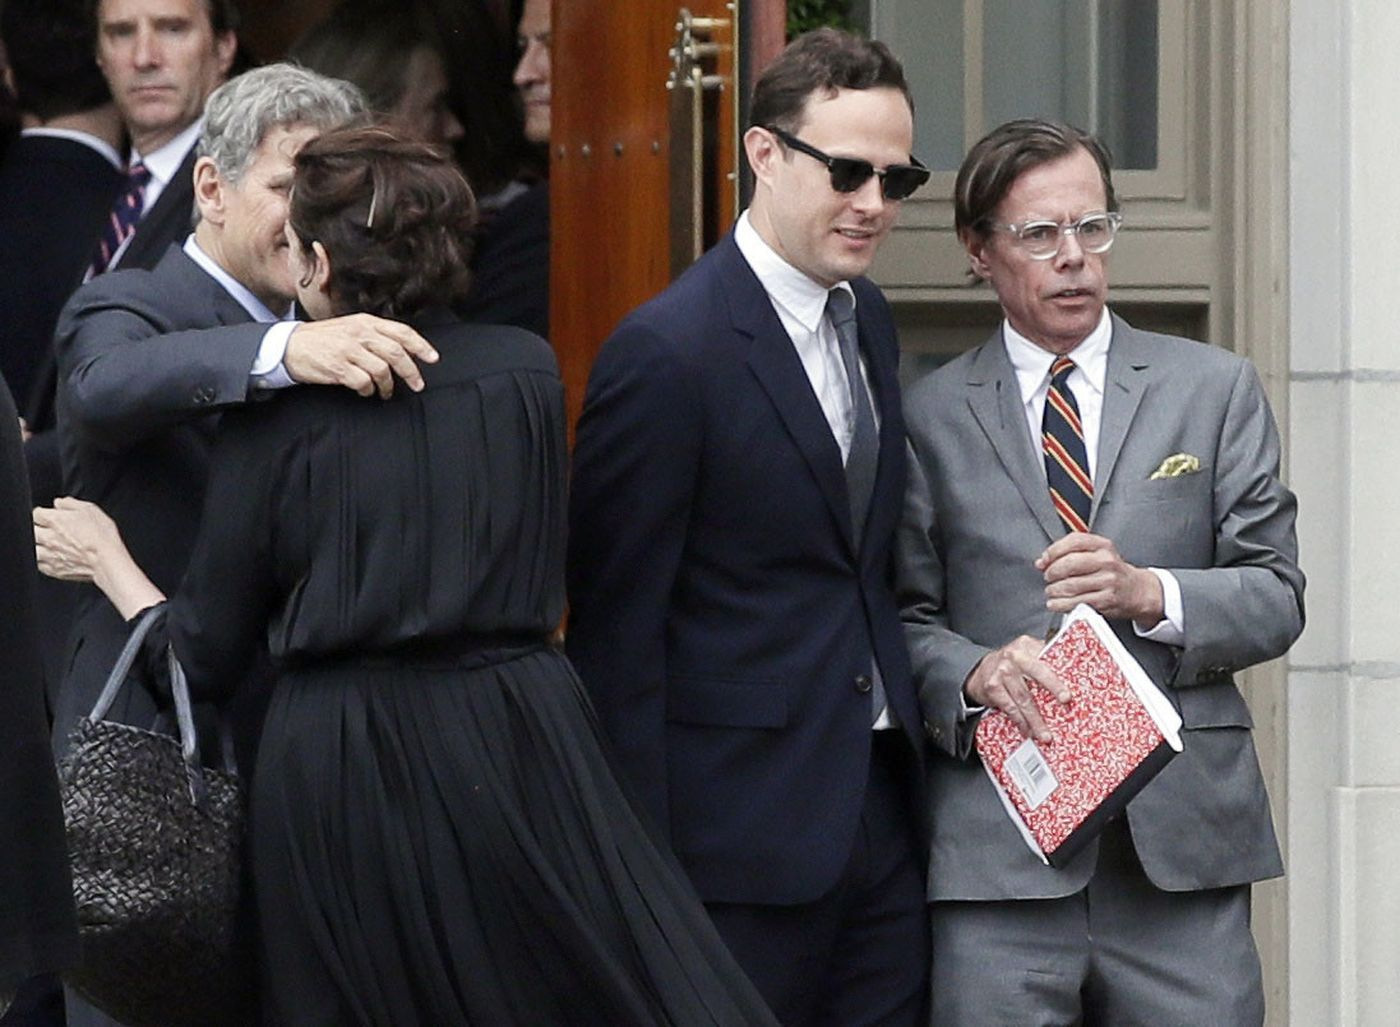 Kate Spade's husband at the funeral